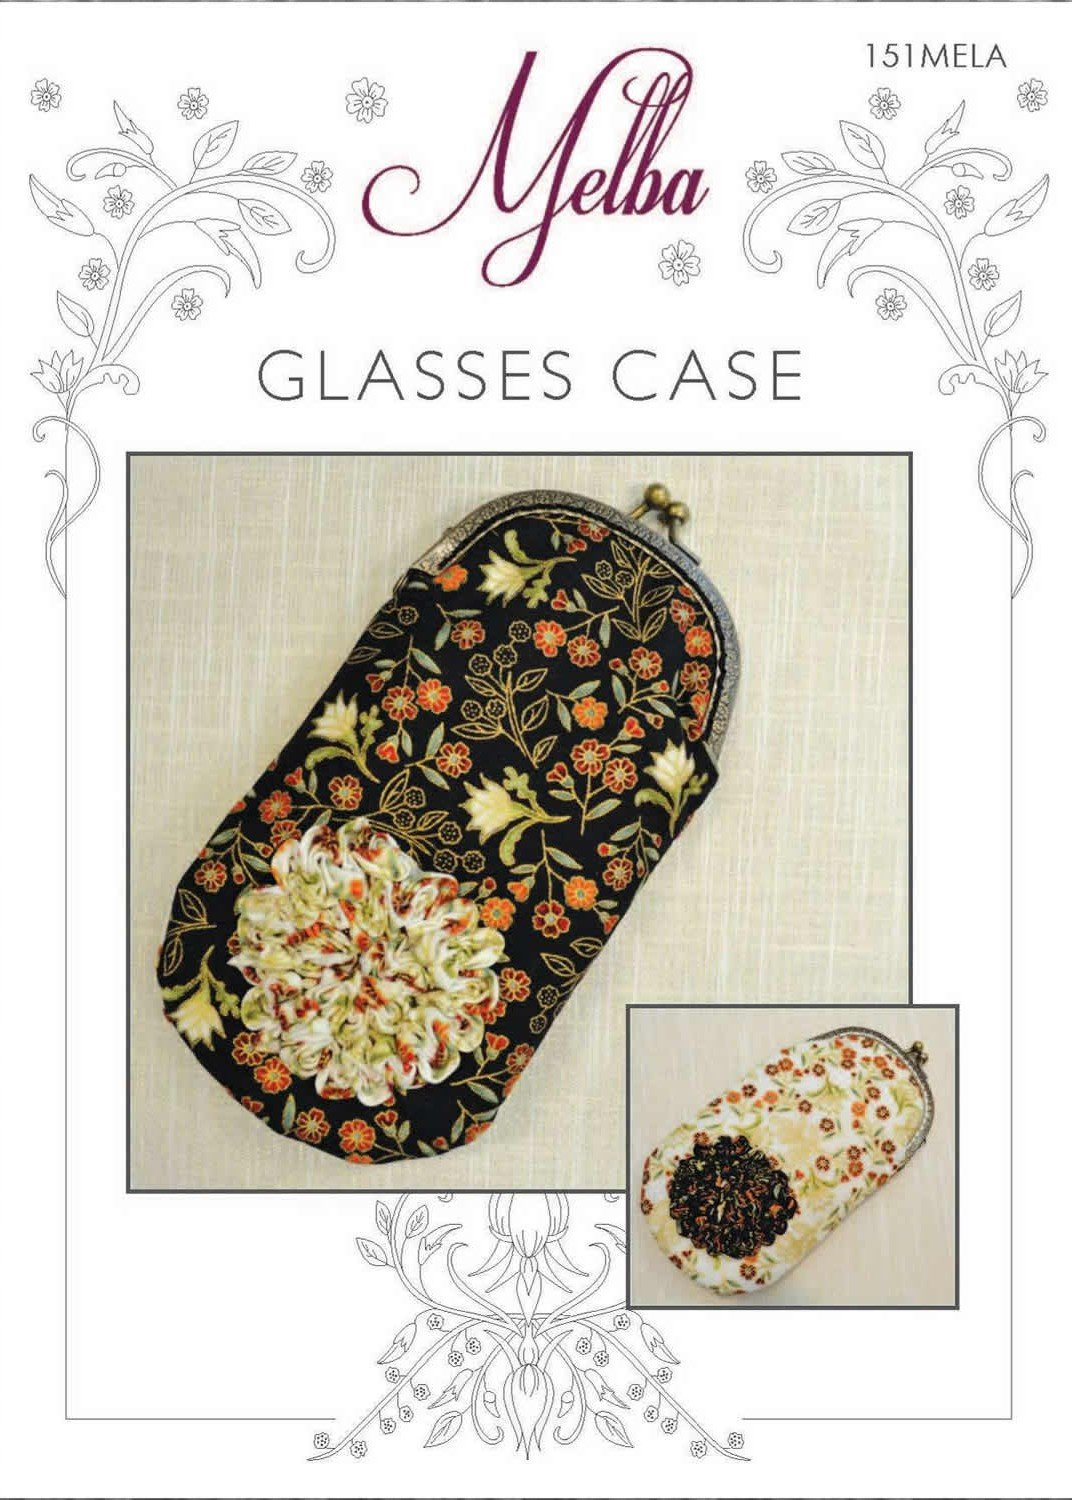 Glasses Case - Melba Australis